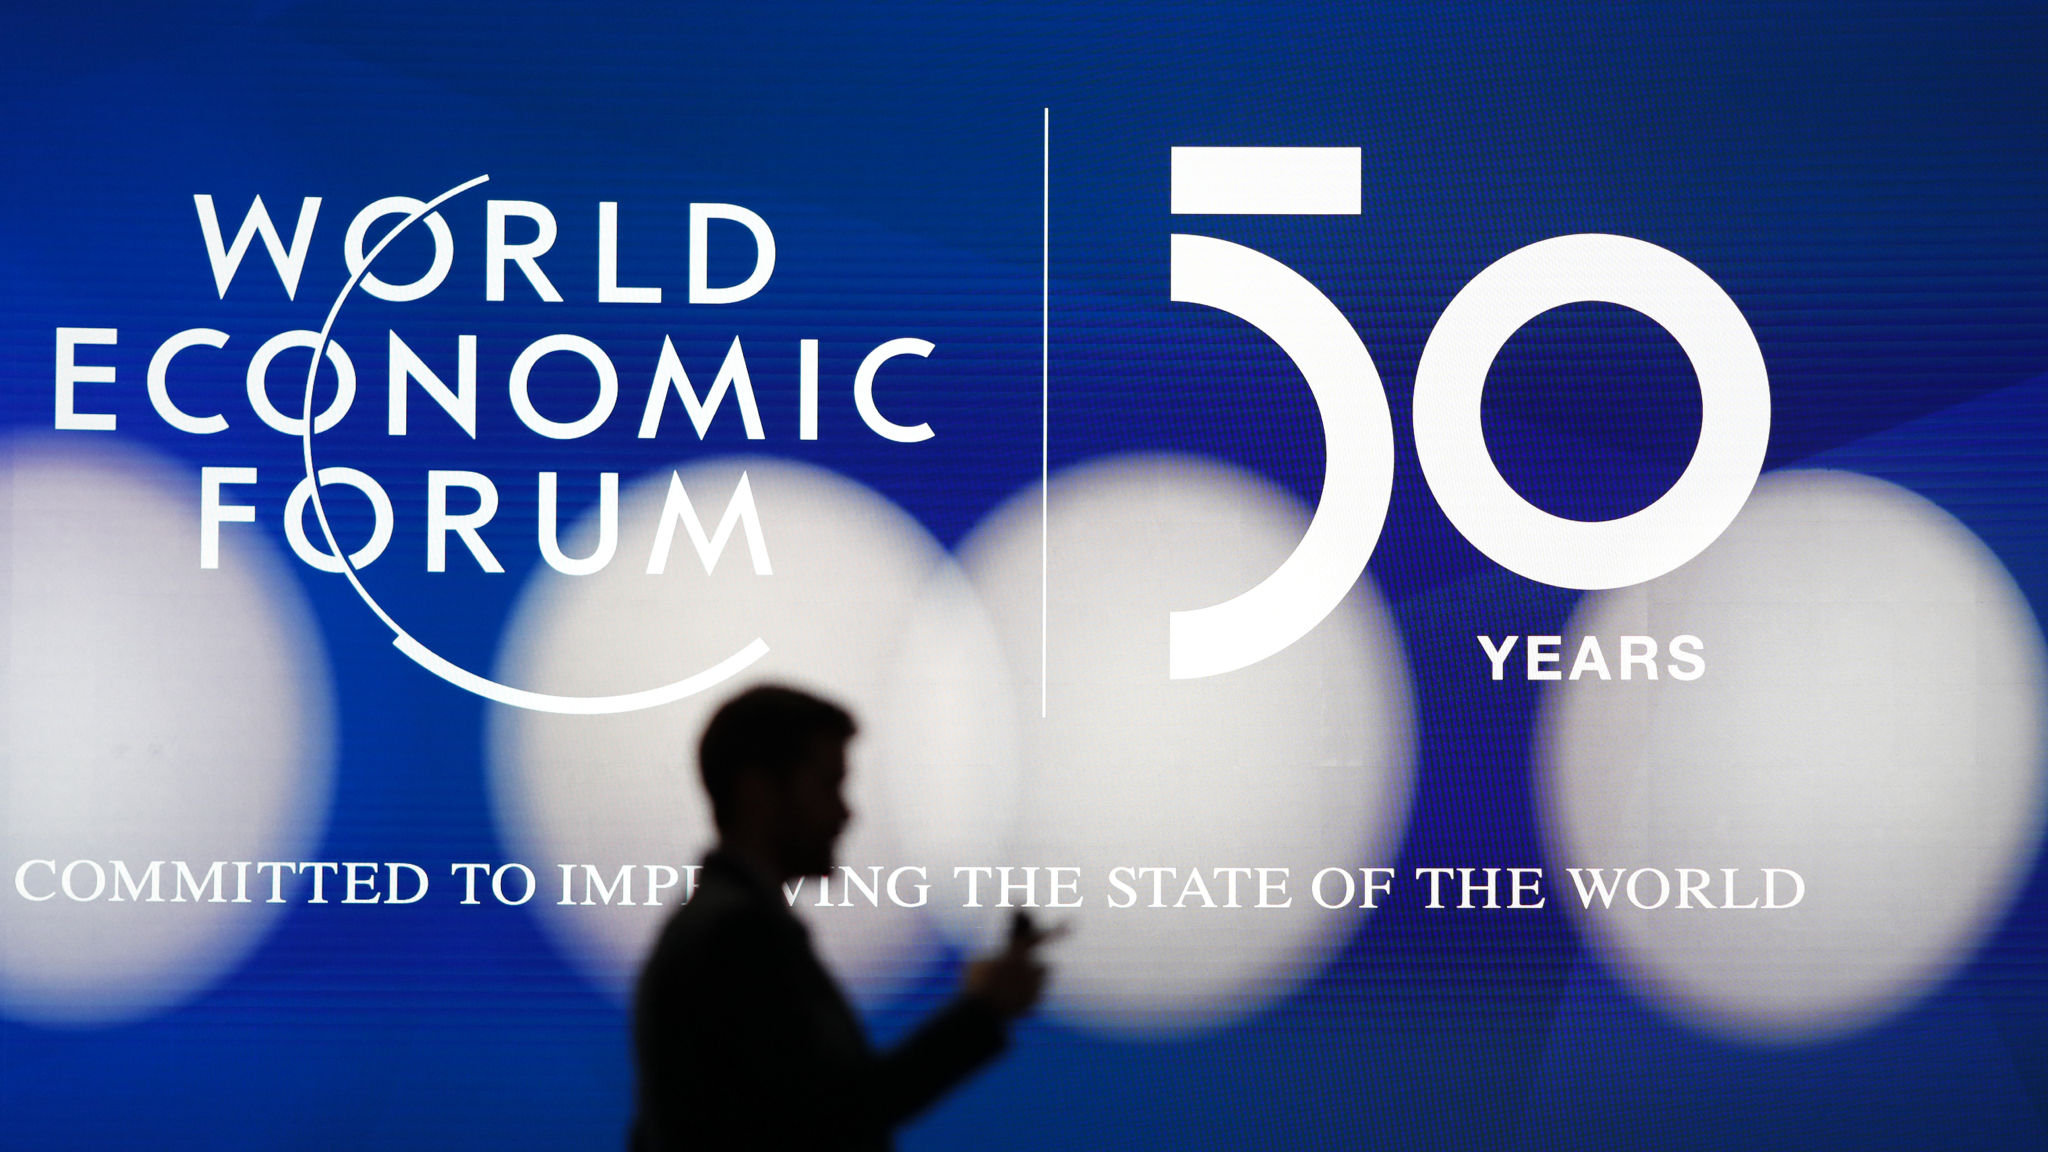 The World Economic Forum (WEF) marks its 50th anniversary